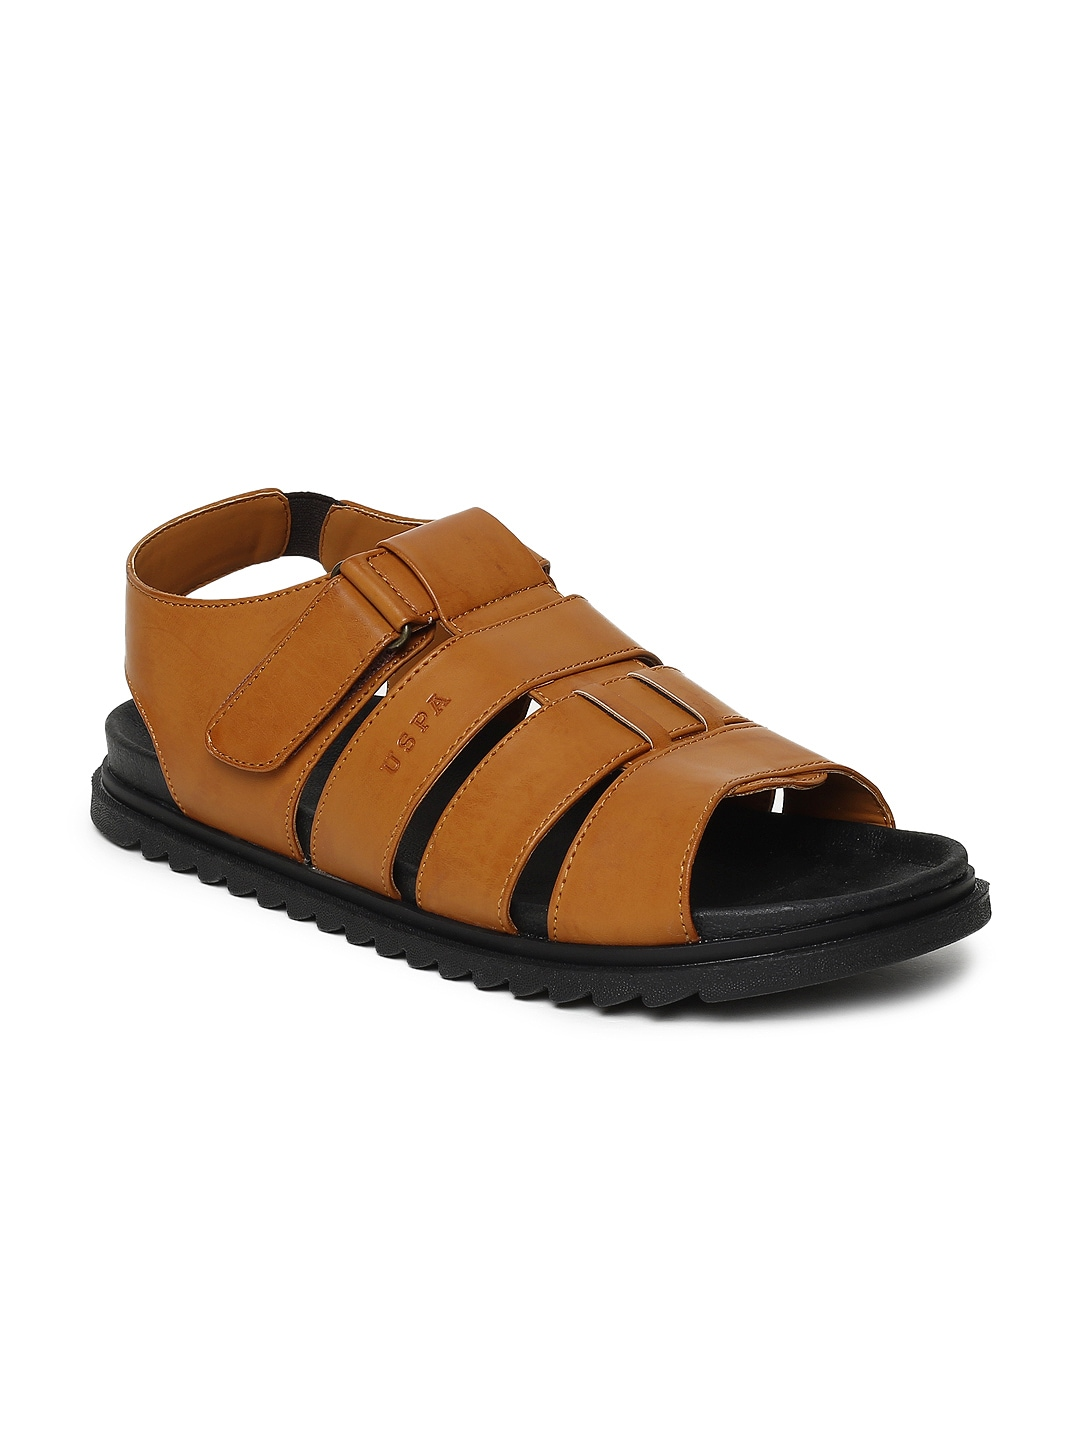 bd33053f0f3e Sandals - Buy Sandals Online for Men   Women in India